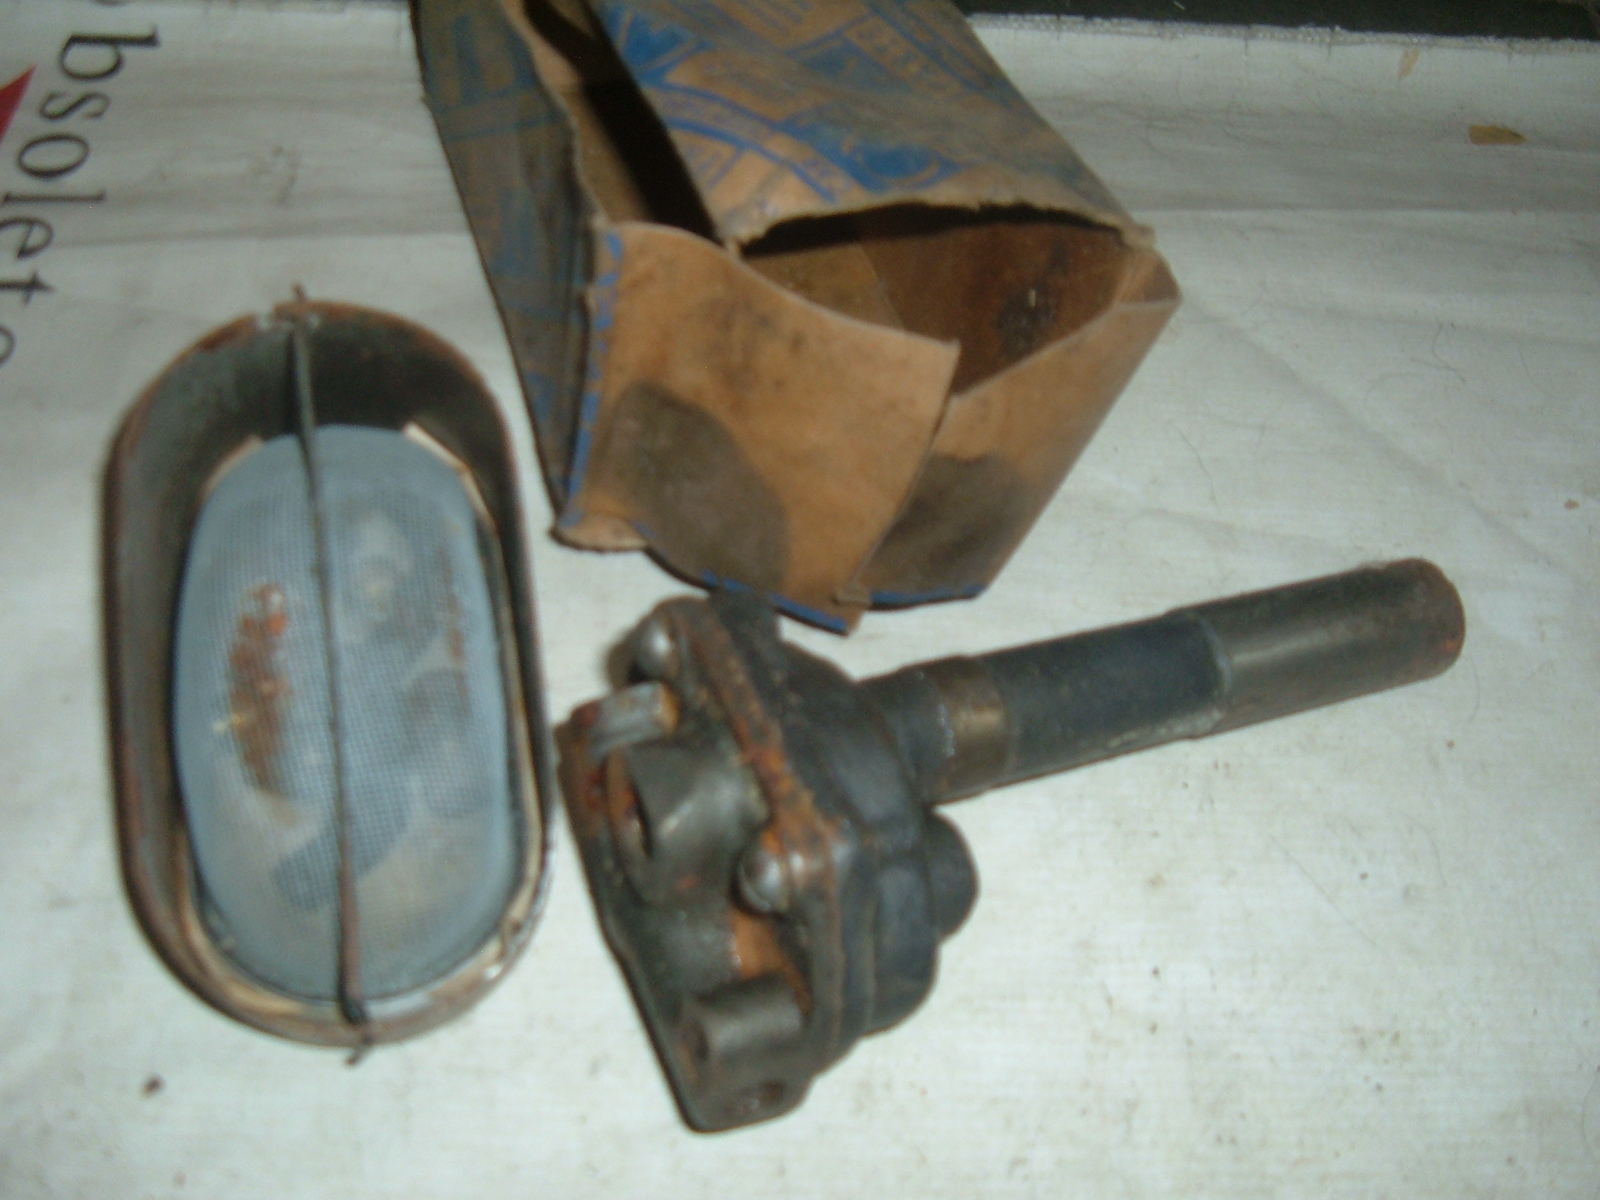 1935 chevrolet engine oil pump nos gm 604509 (z 604509)